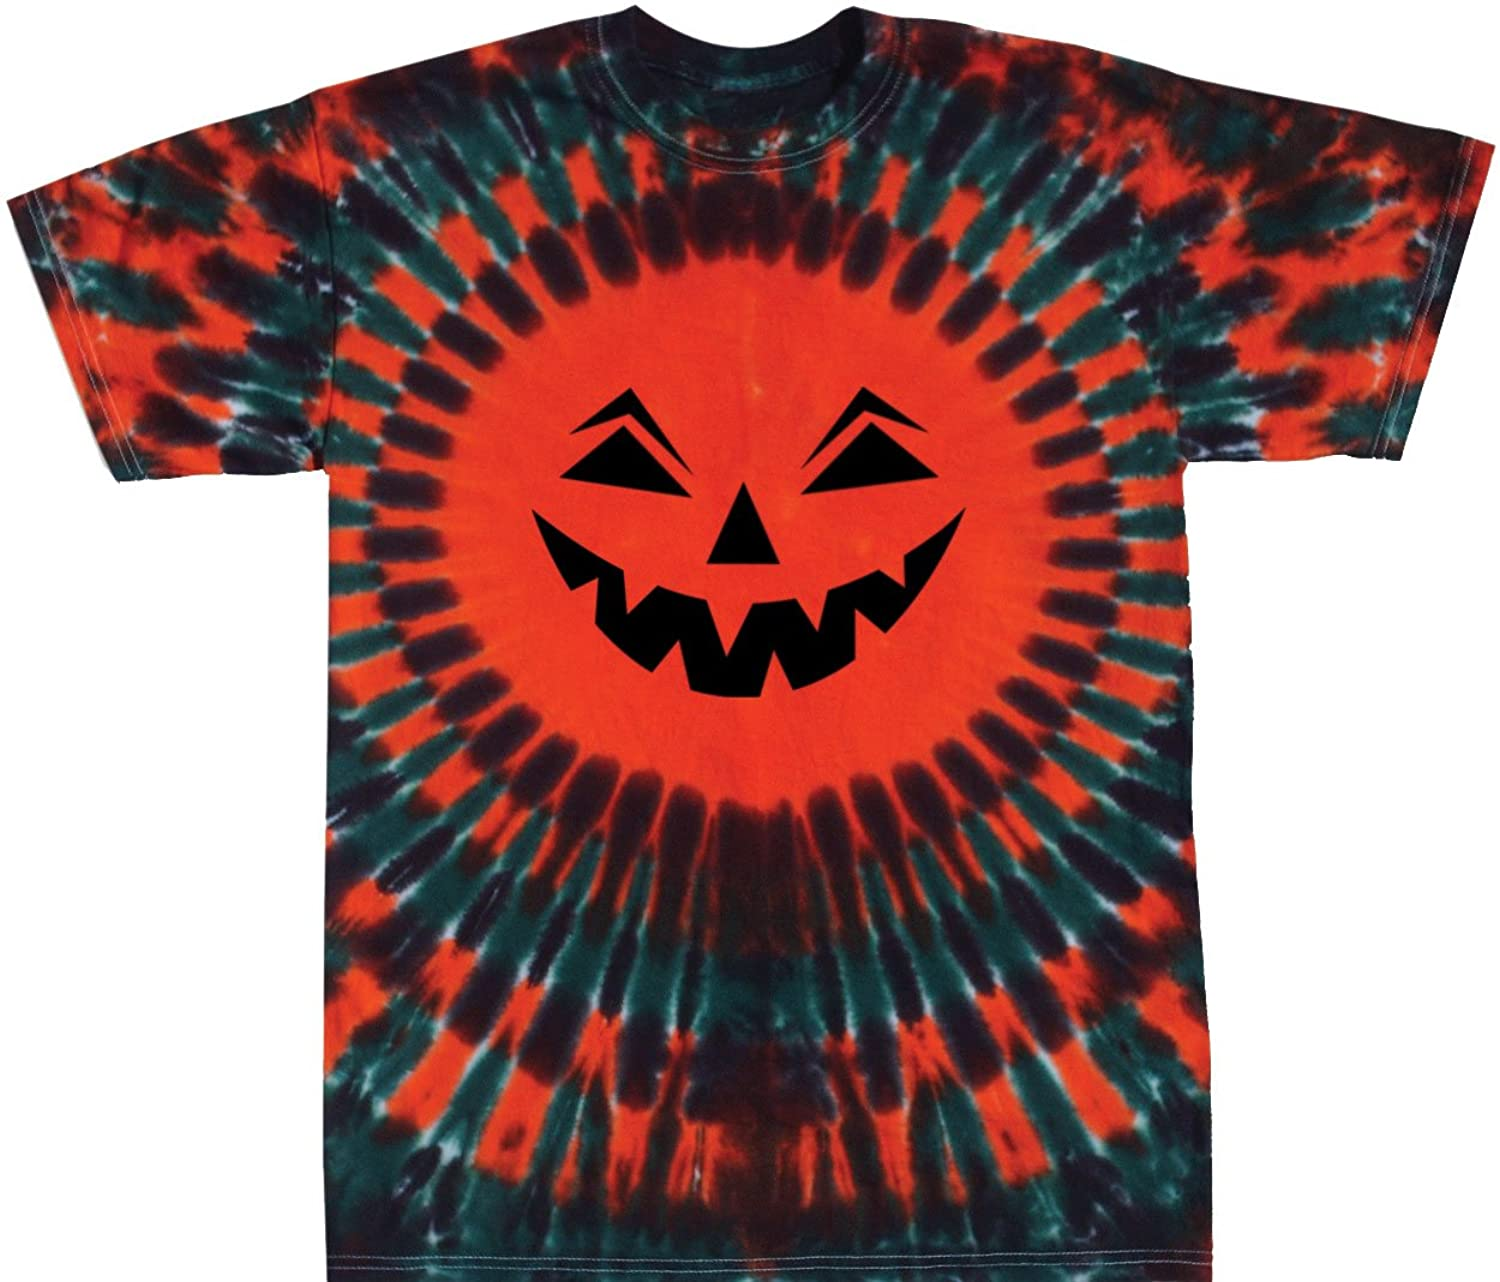 amazoncom tie dyed shop halloween jack o lantern t shirt small 5x shortlong sleeves clothing - Scary Halloween Shirts